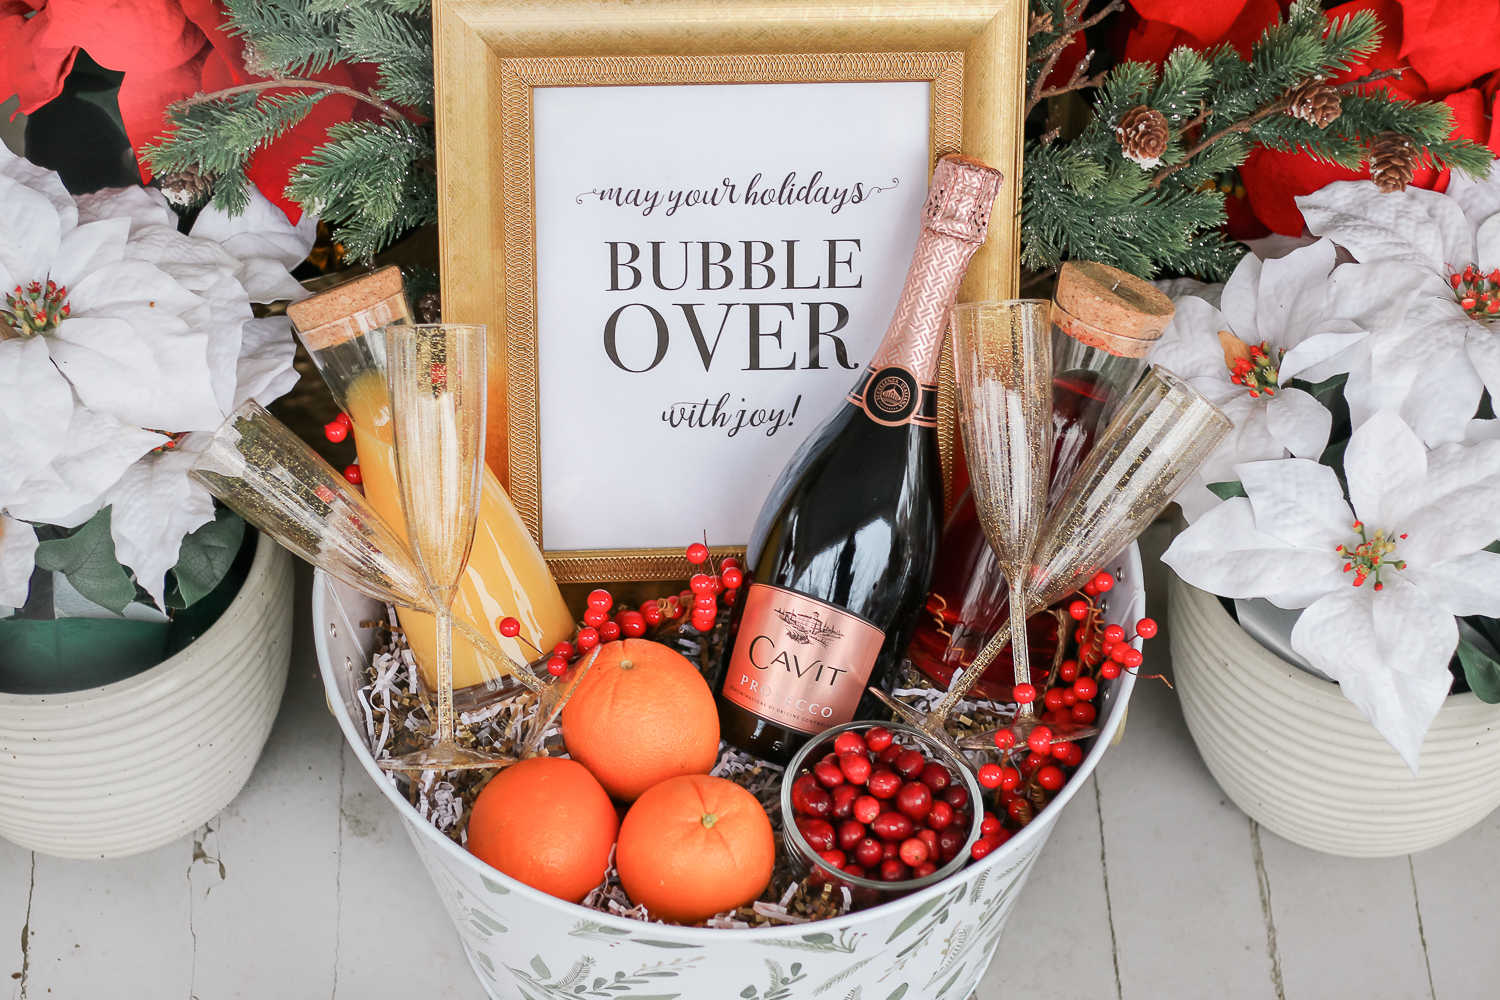 DIY Christmas Morning Mimosa Gift Basket by southern lifestyle blogger Stephanie Ziajka from Diary of a Debutante, Cavit Prosecco review, prosecco gift basket ideas, mimosa champagne gift basket idea, cute wine gift basket ideas for the holidays